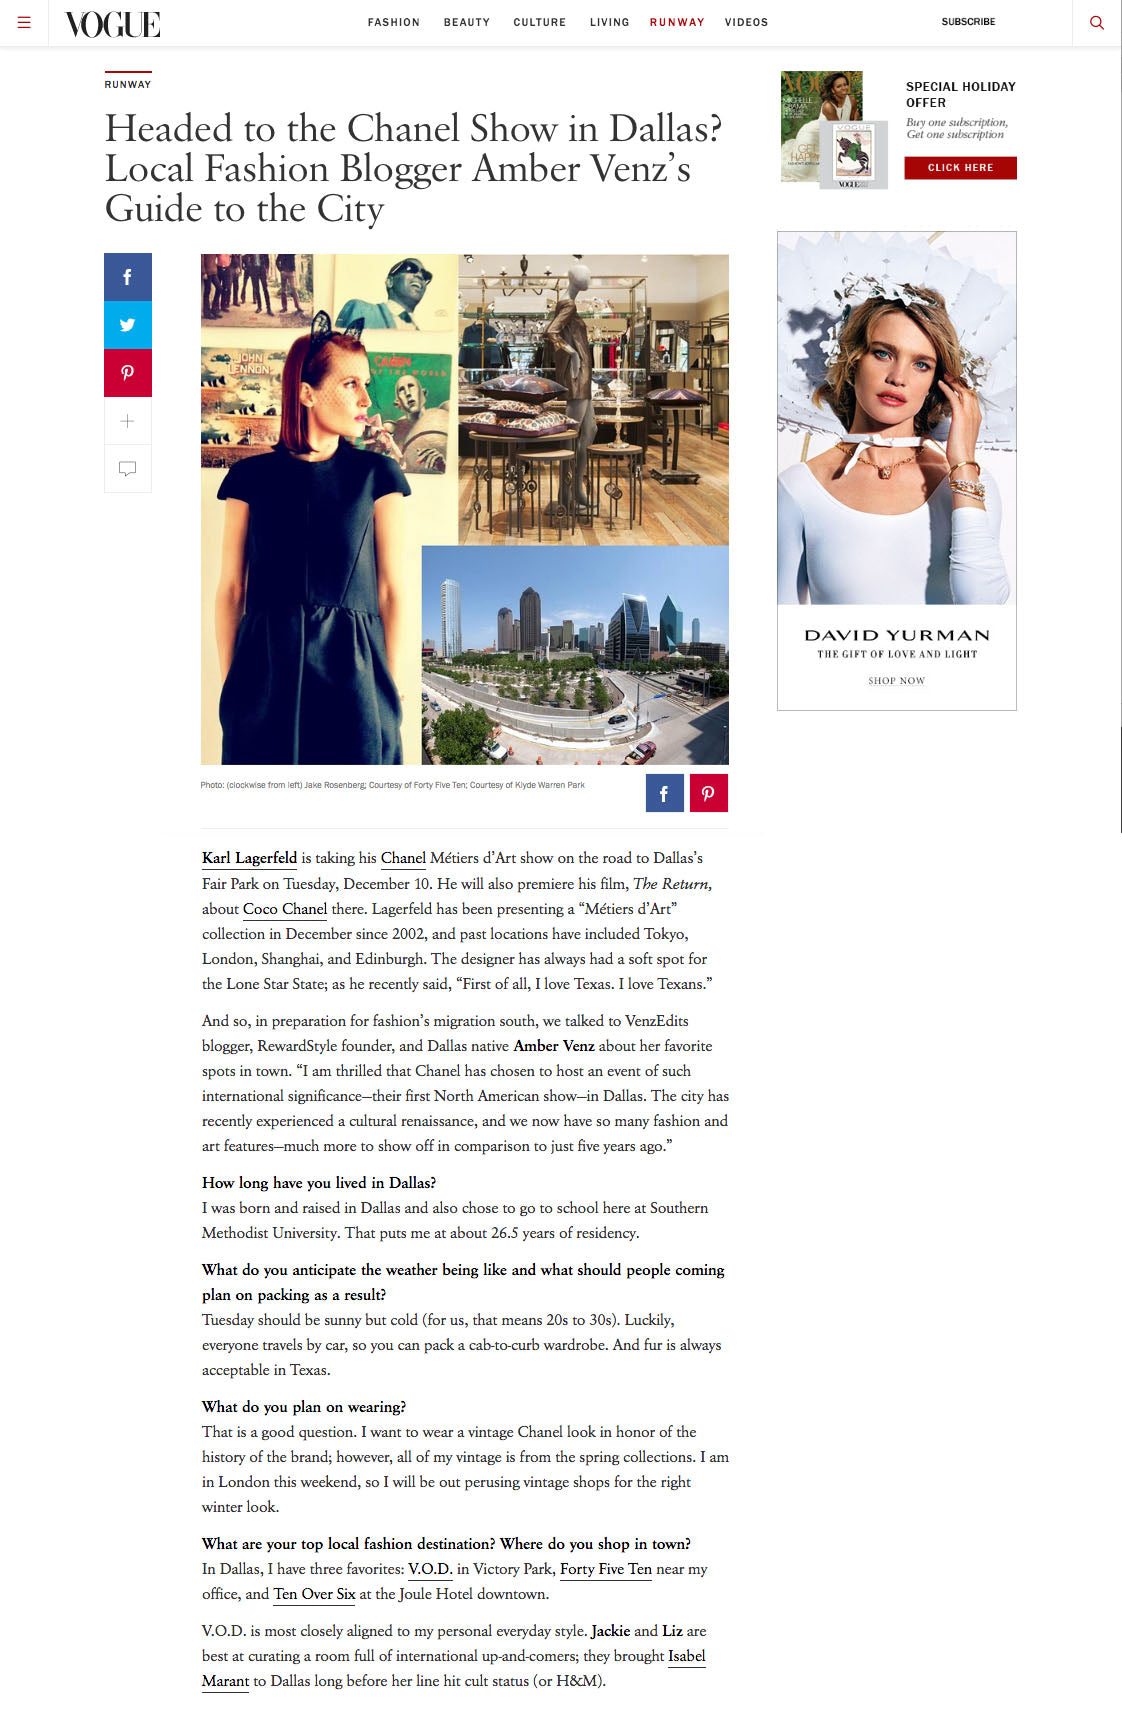 Vogue: Dallas Blogger Amber Venz Names TenOverSix Favorite Dallas Boutique